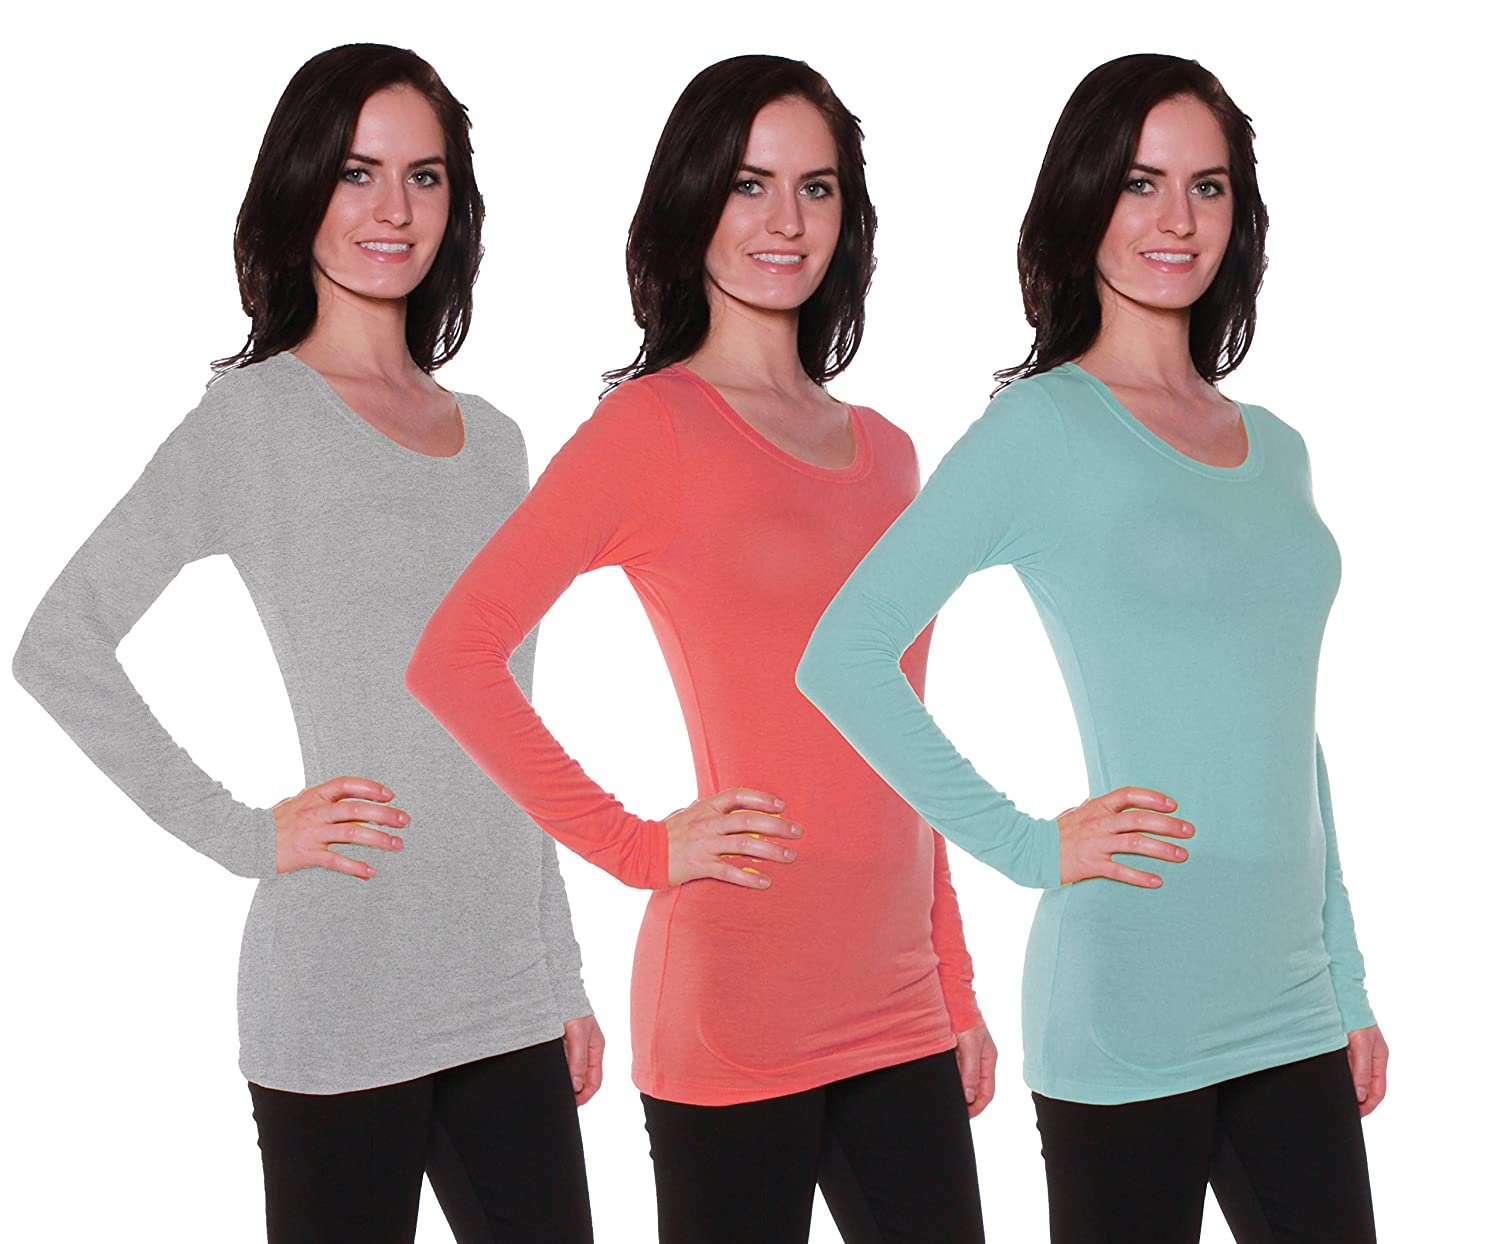 Active Products SHIRT レディース B06VVW8T99 Large|3 Pack - Soft Mint, Scarlet, H Grey 3 Pack - Soft Mint, Scarlet, H Grey Large